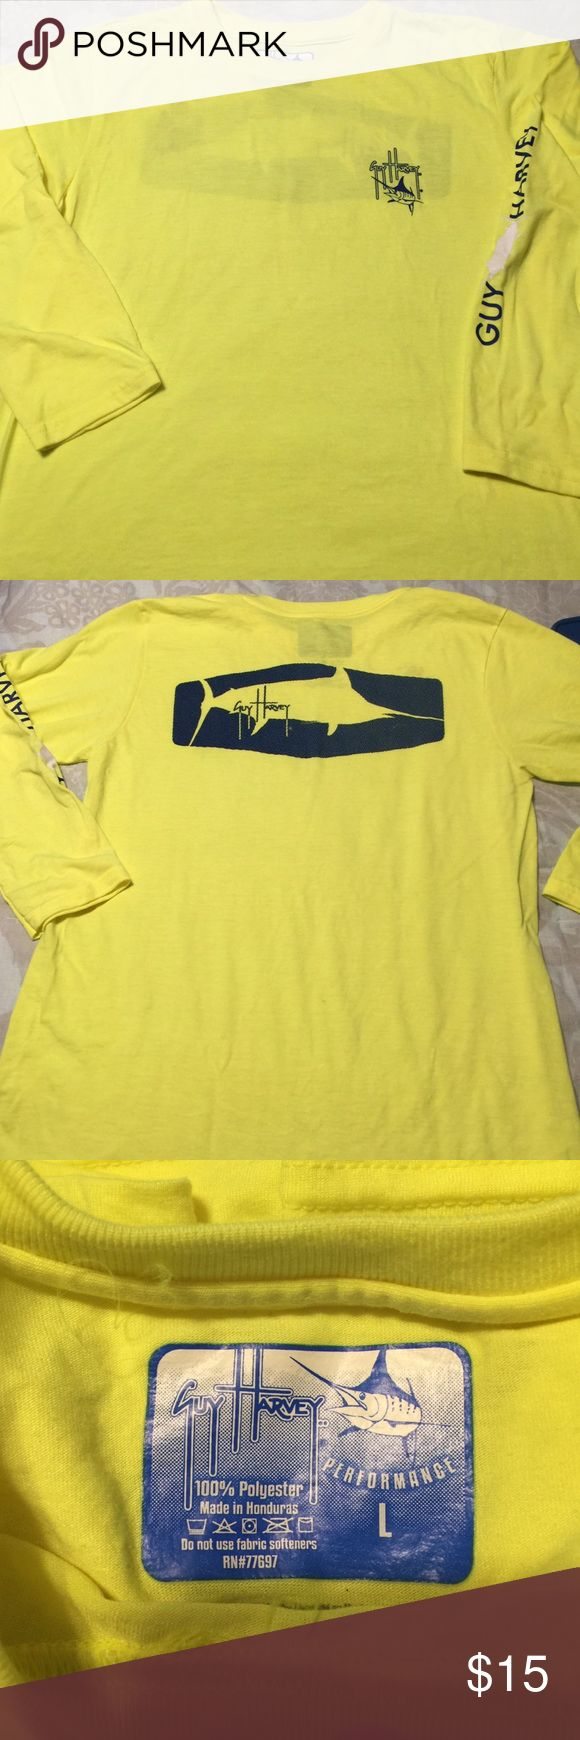 Guy Harvey T-Shirt Boys Guy Harvey long sleeve tee. Brand New. Got for Christmas and too little. Fits more like a Medium. There were no tags as it was ordered online. Shirts & Tops Tees - Long Sleeve